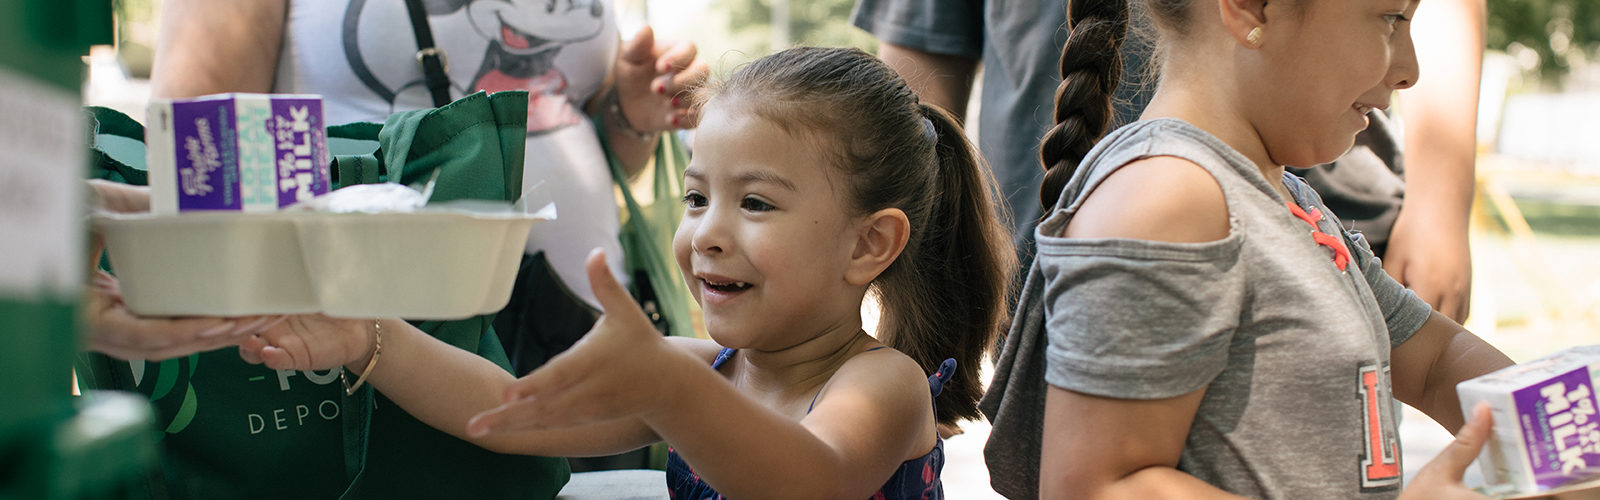 Children receive meals from the Food Depository's Lunch Bus